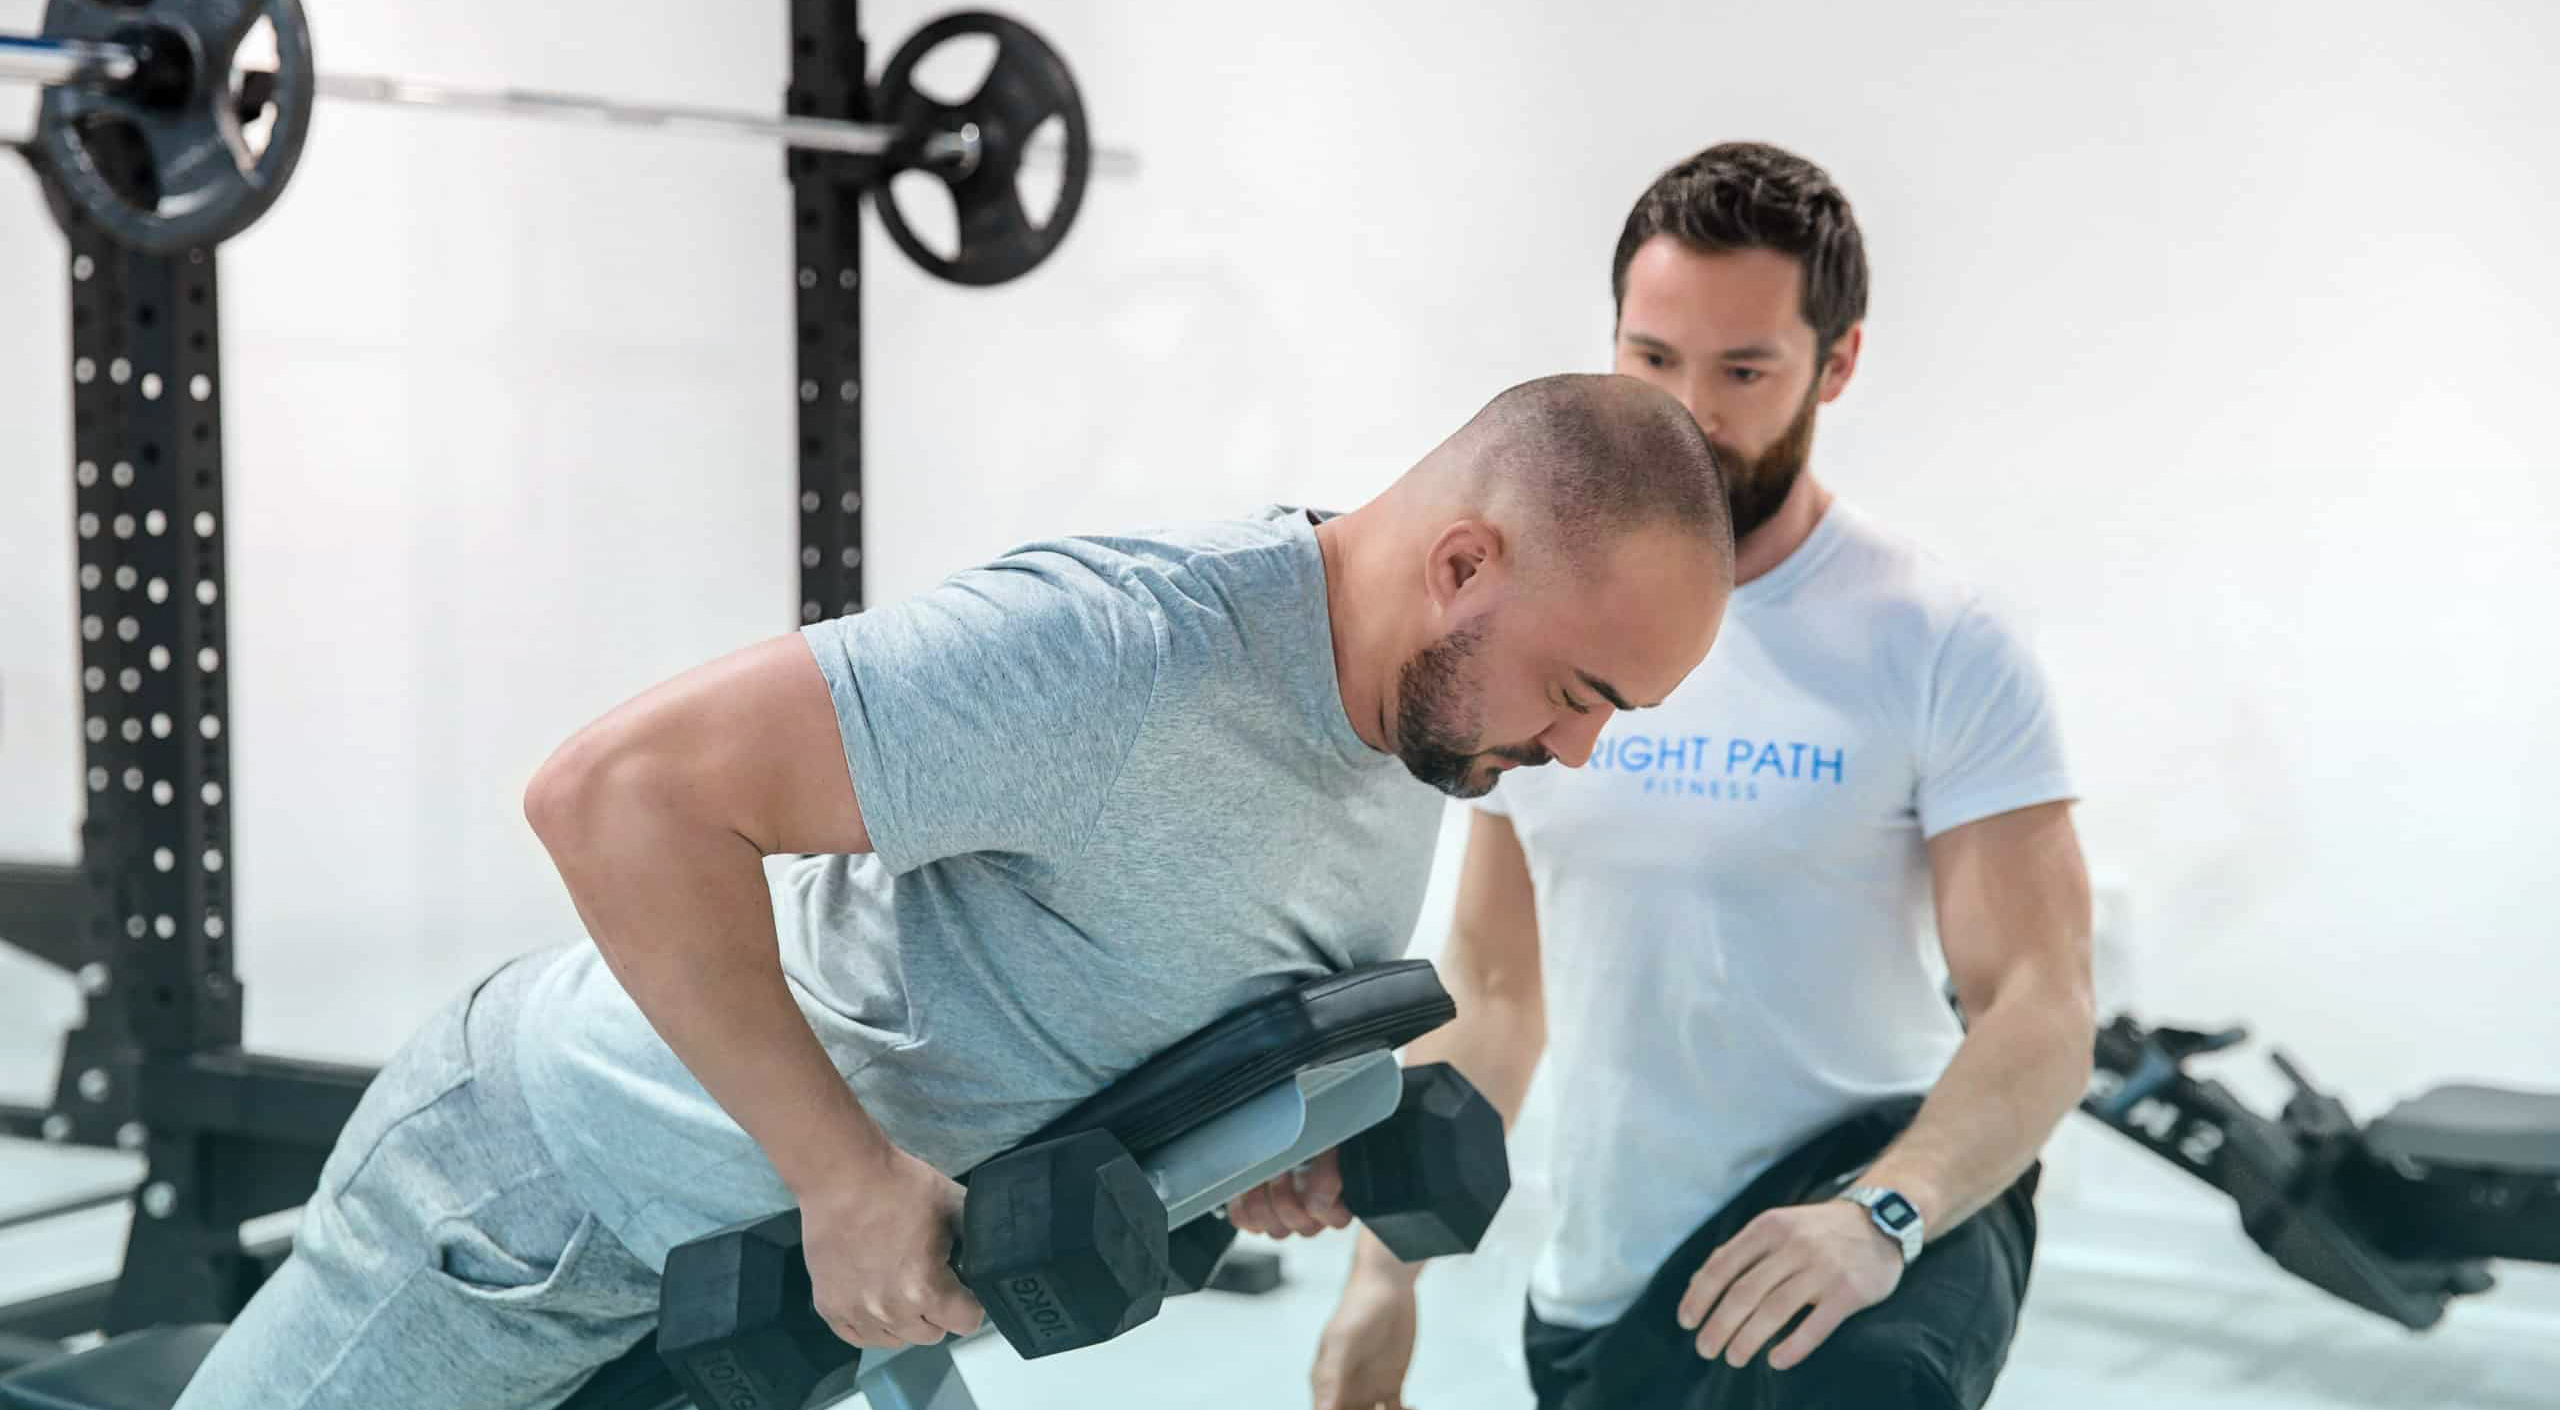 Hyperextension with personal trainer in gym